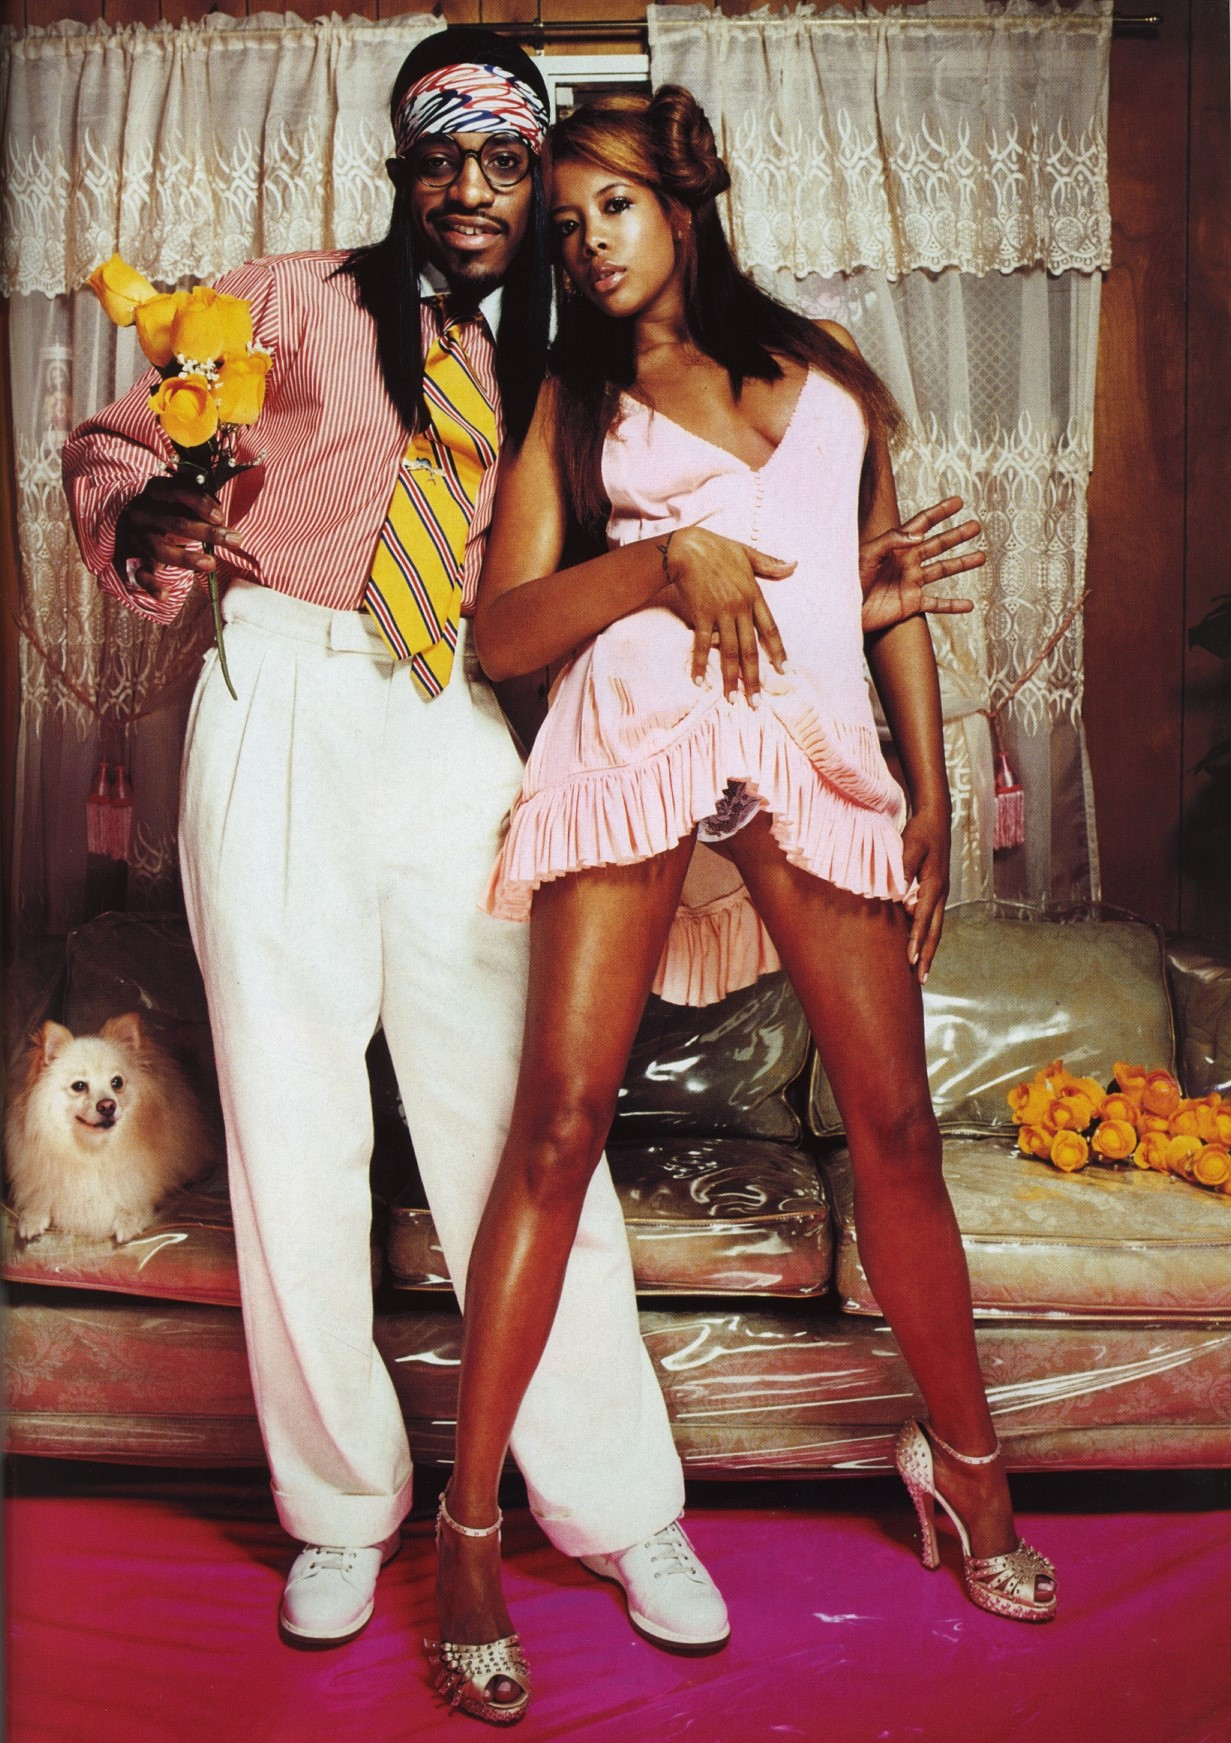 kelis and andre 3000 photography david lachapelle the face n 88 may 2004